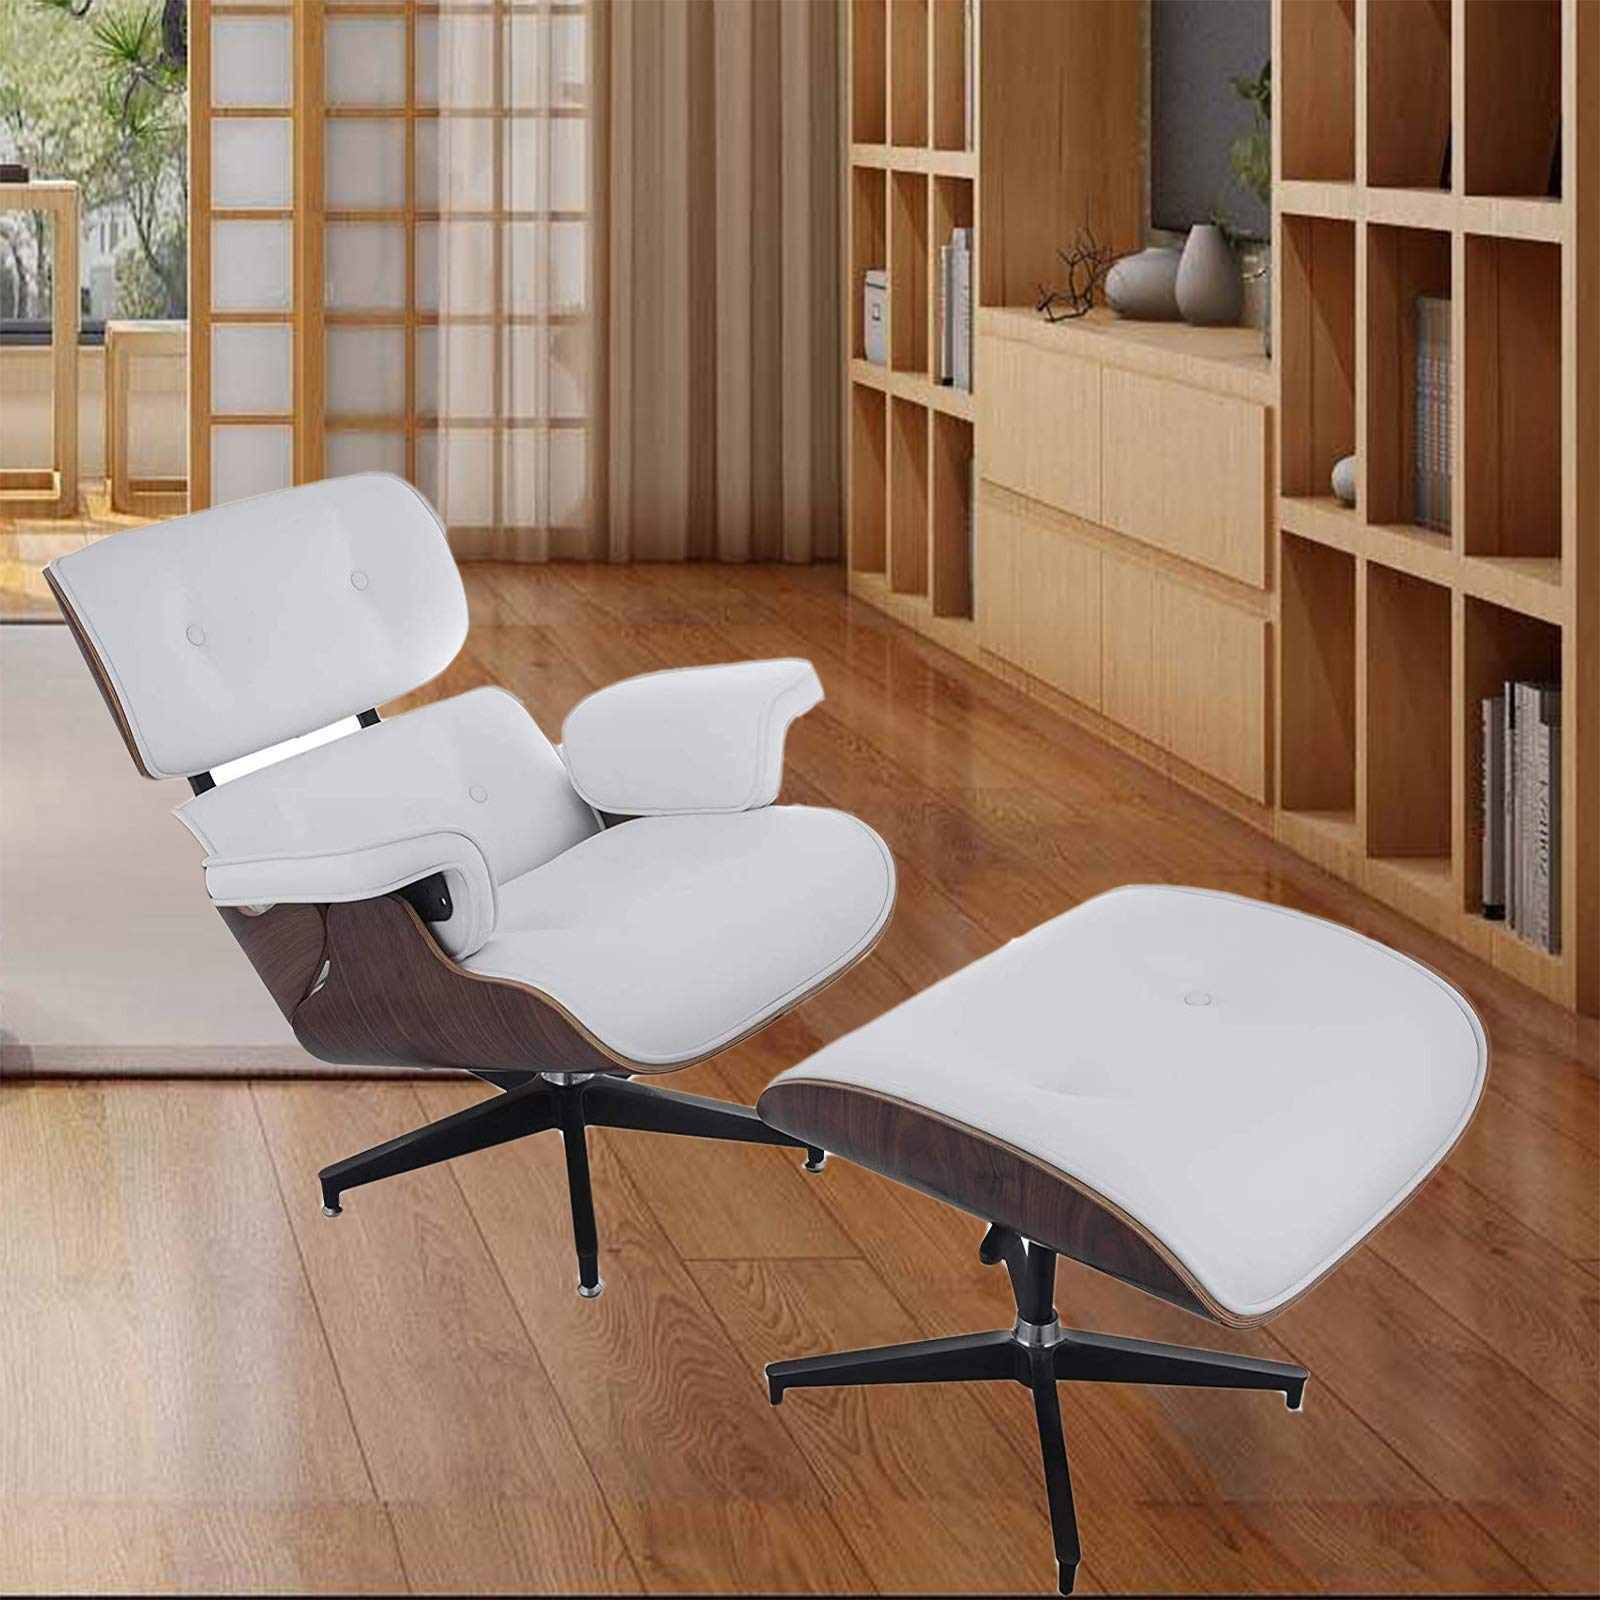 Mophorn Lounge Chair with Ottoman Mid Century Modern Replica Style Recliner Chair High Grade PU Leather Recliner Armchair with Foot Stool White by Mophorn